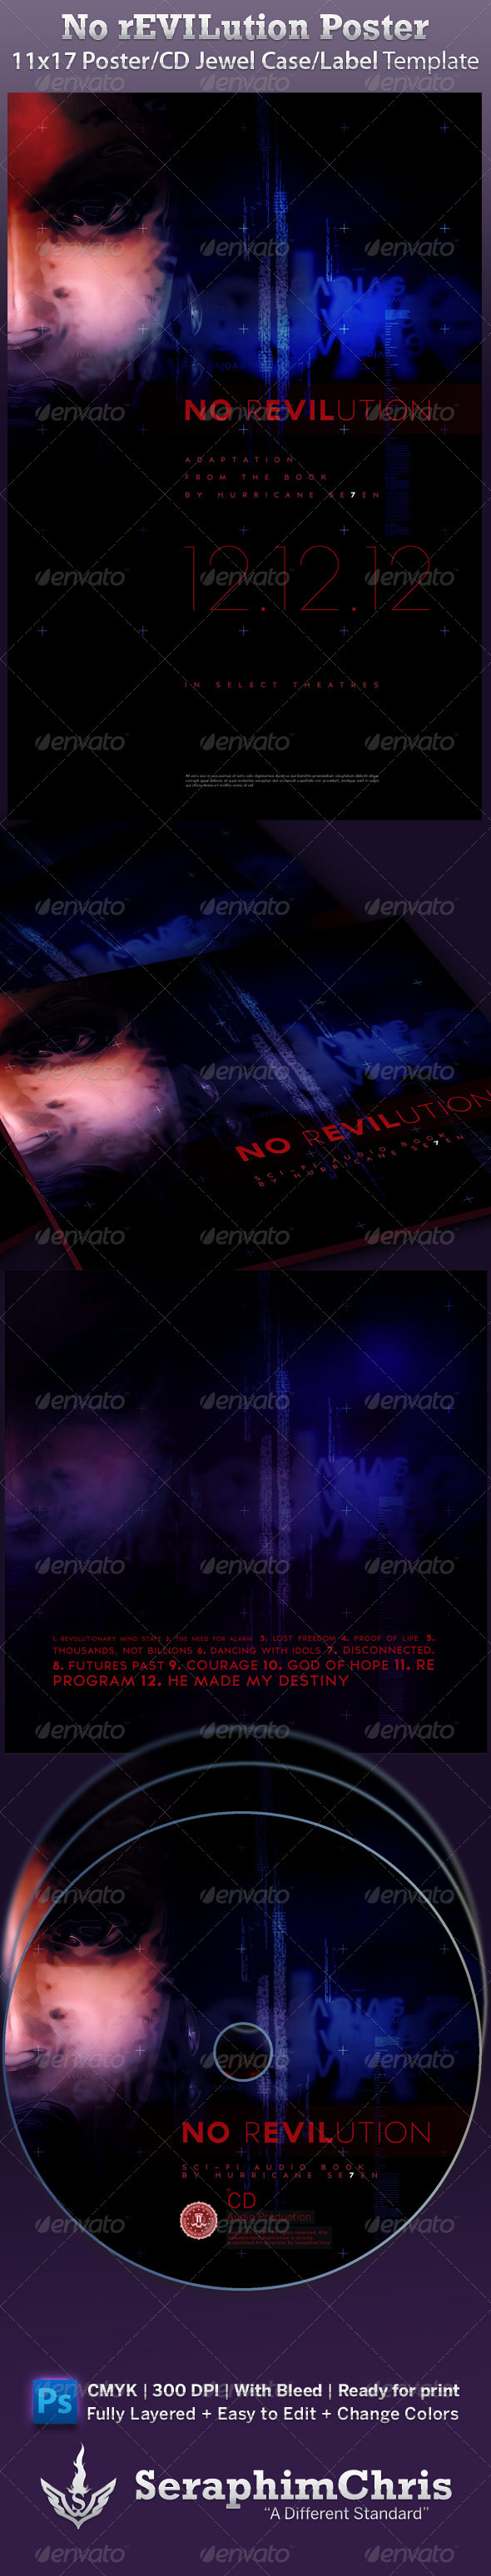 No Revolution Poster and CD Jewel Case Template - Miscellaneous Print Templates